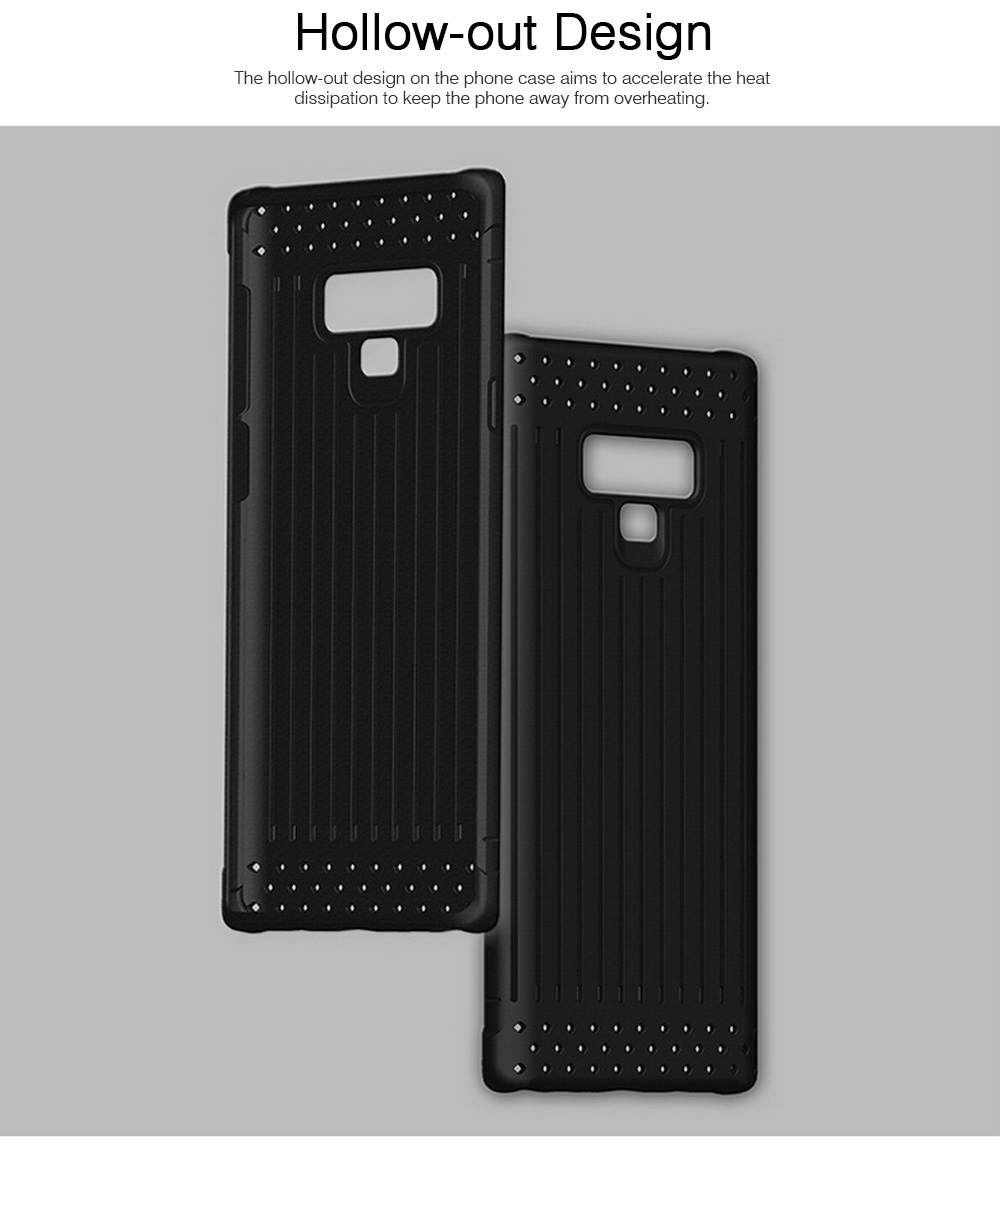 Transparent Phone Case for Galaxy Note 9, Soft Silicone Phone Protective Case Shell, Anti-smash Shockproof Cover 4